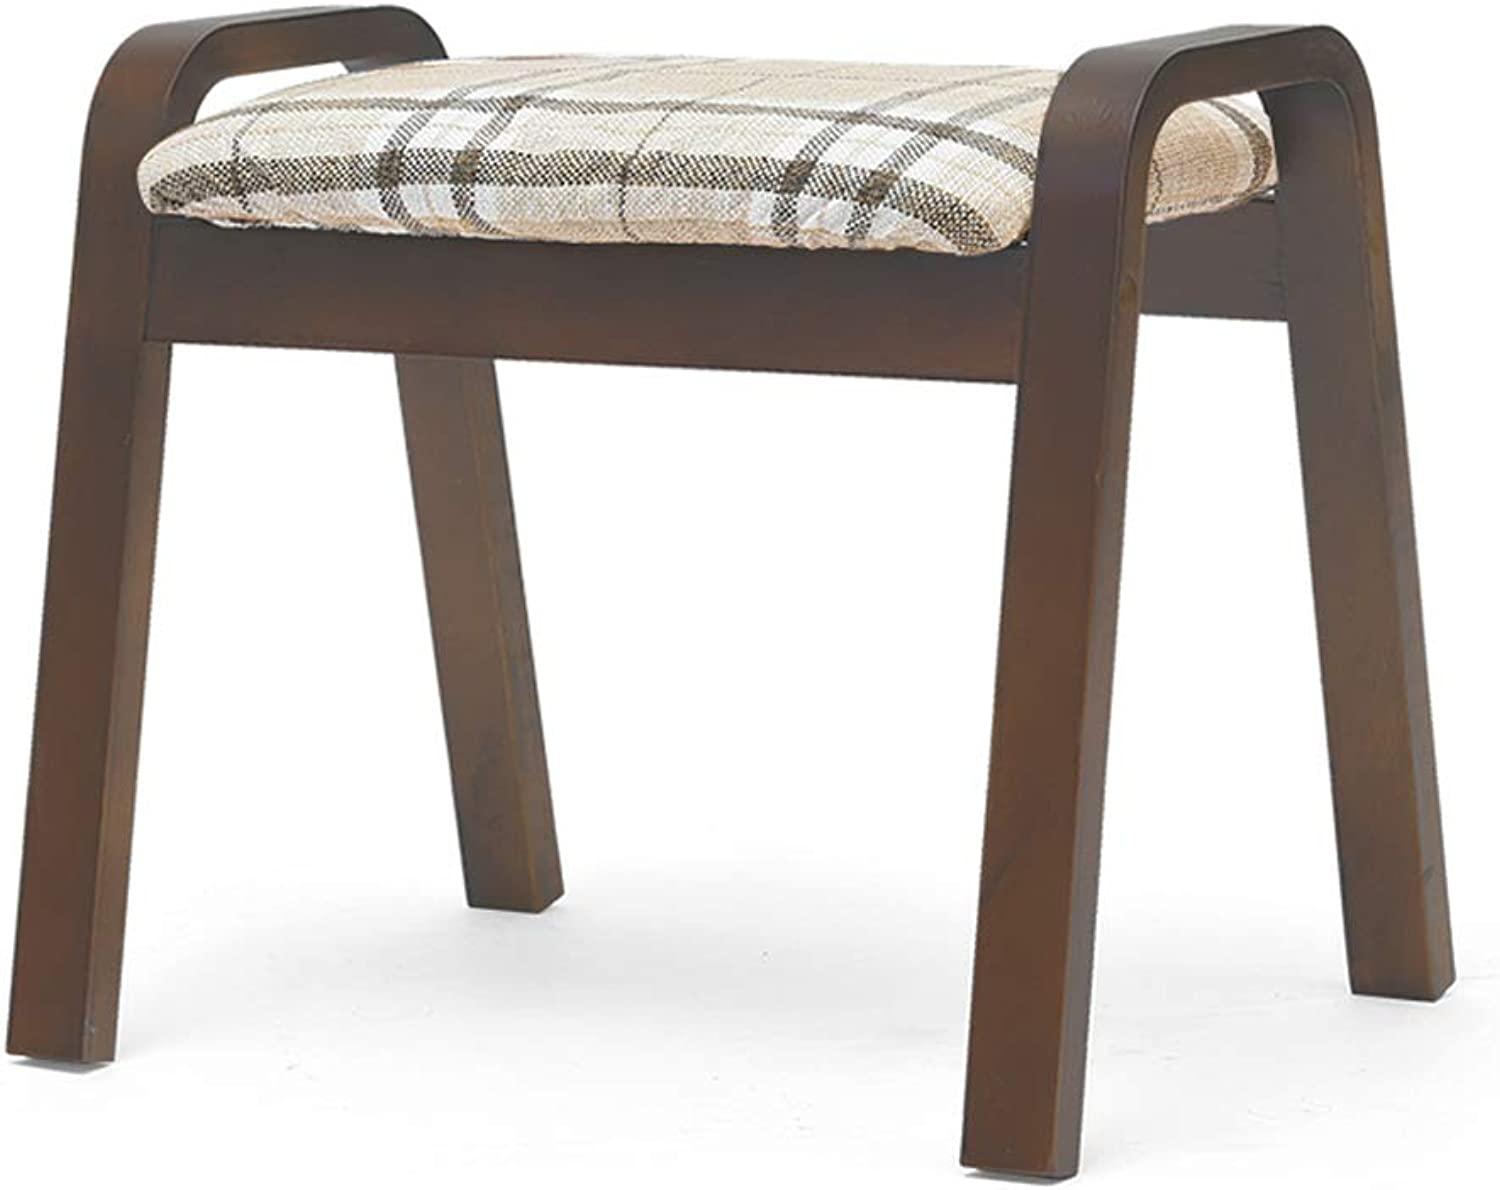 CQ Home Stool Creative Stool Living Room Adult Solid Wood Bench Fabric Stool Sofa Change shoes Bench